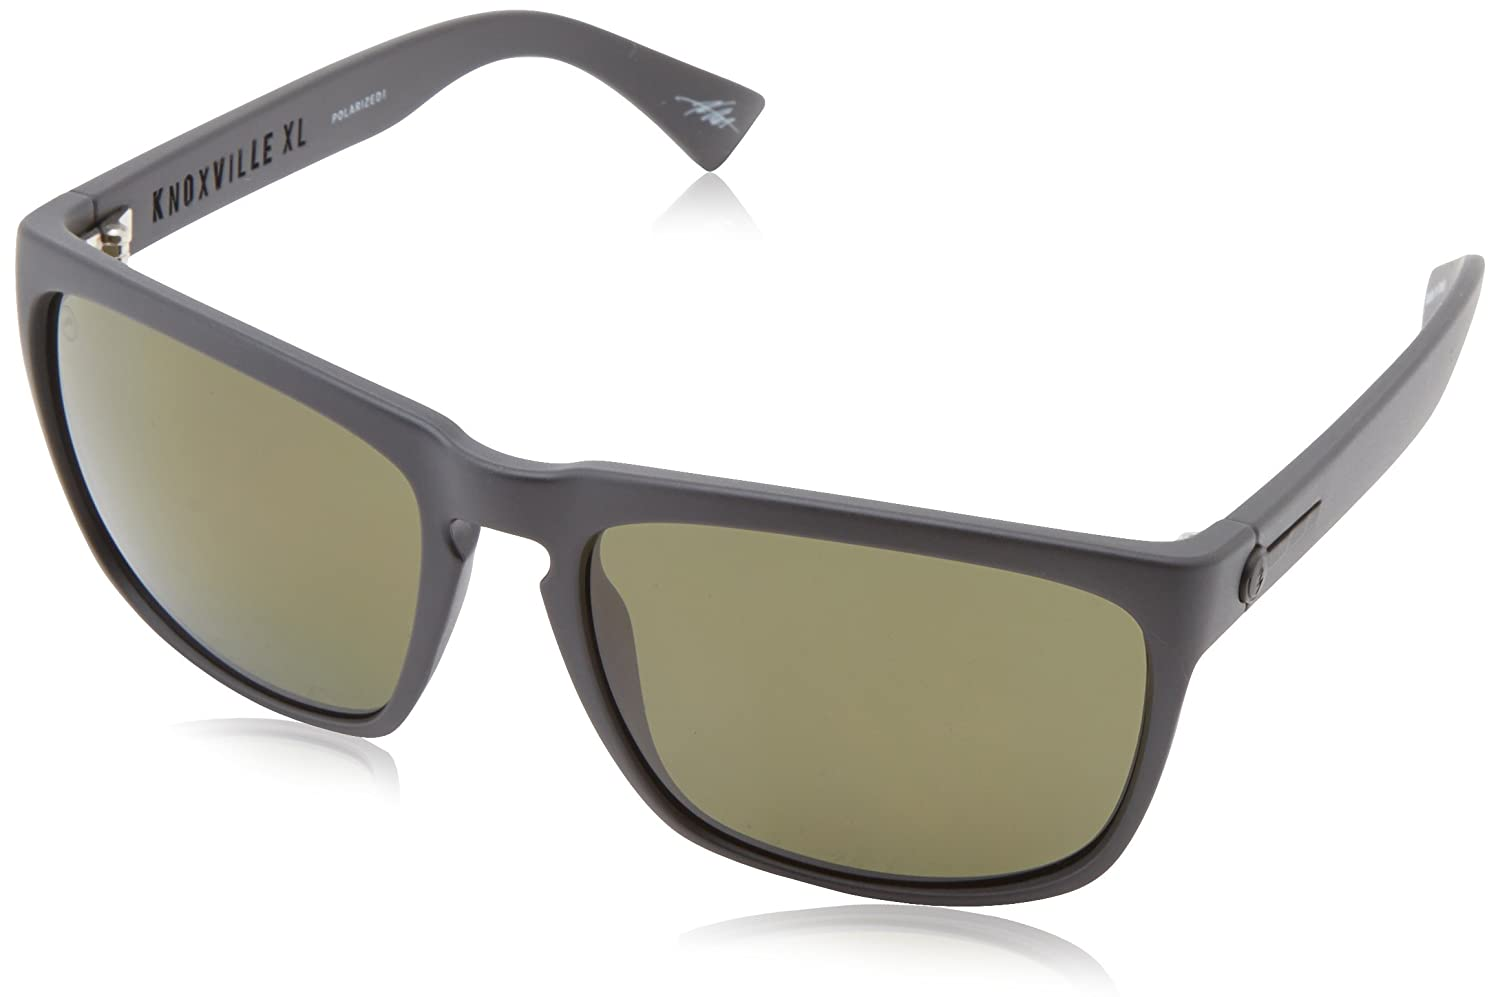 Electric Visual Knoxville XL Matte Black/OHM Polarized Grey Sunglasses